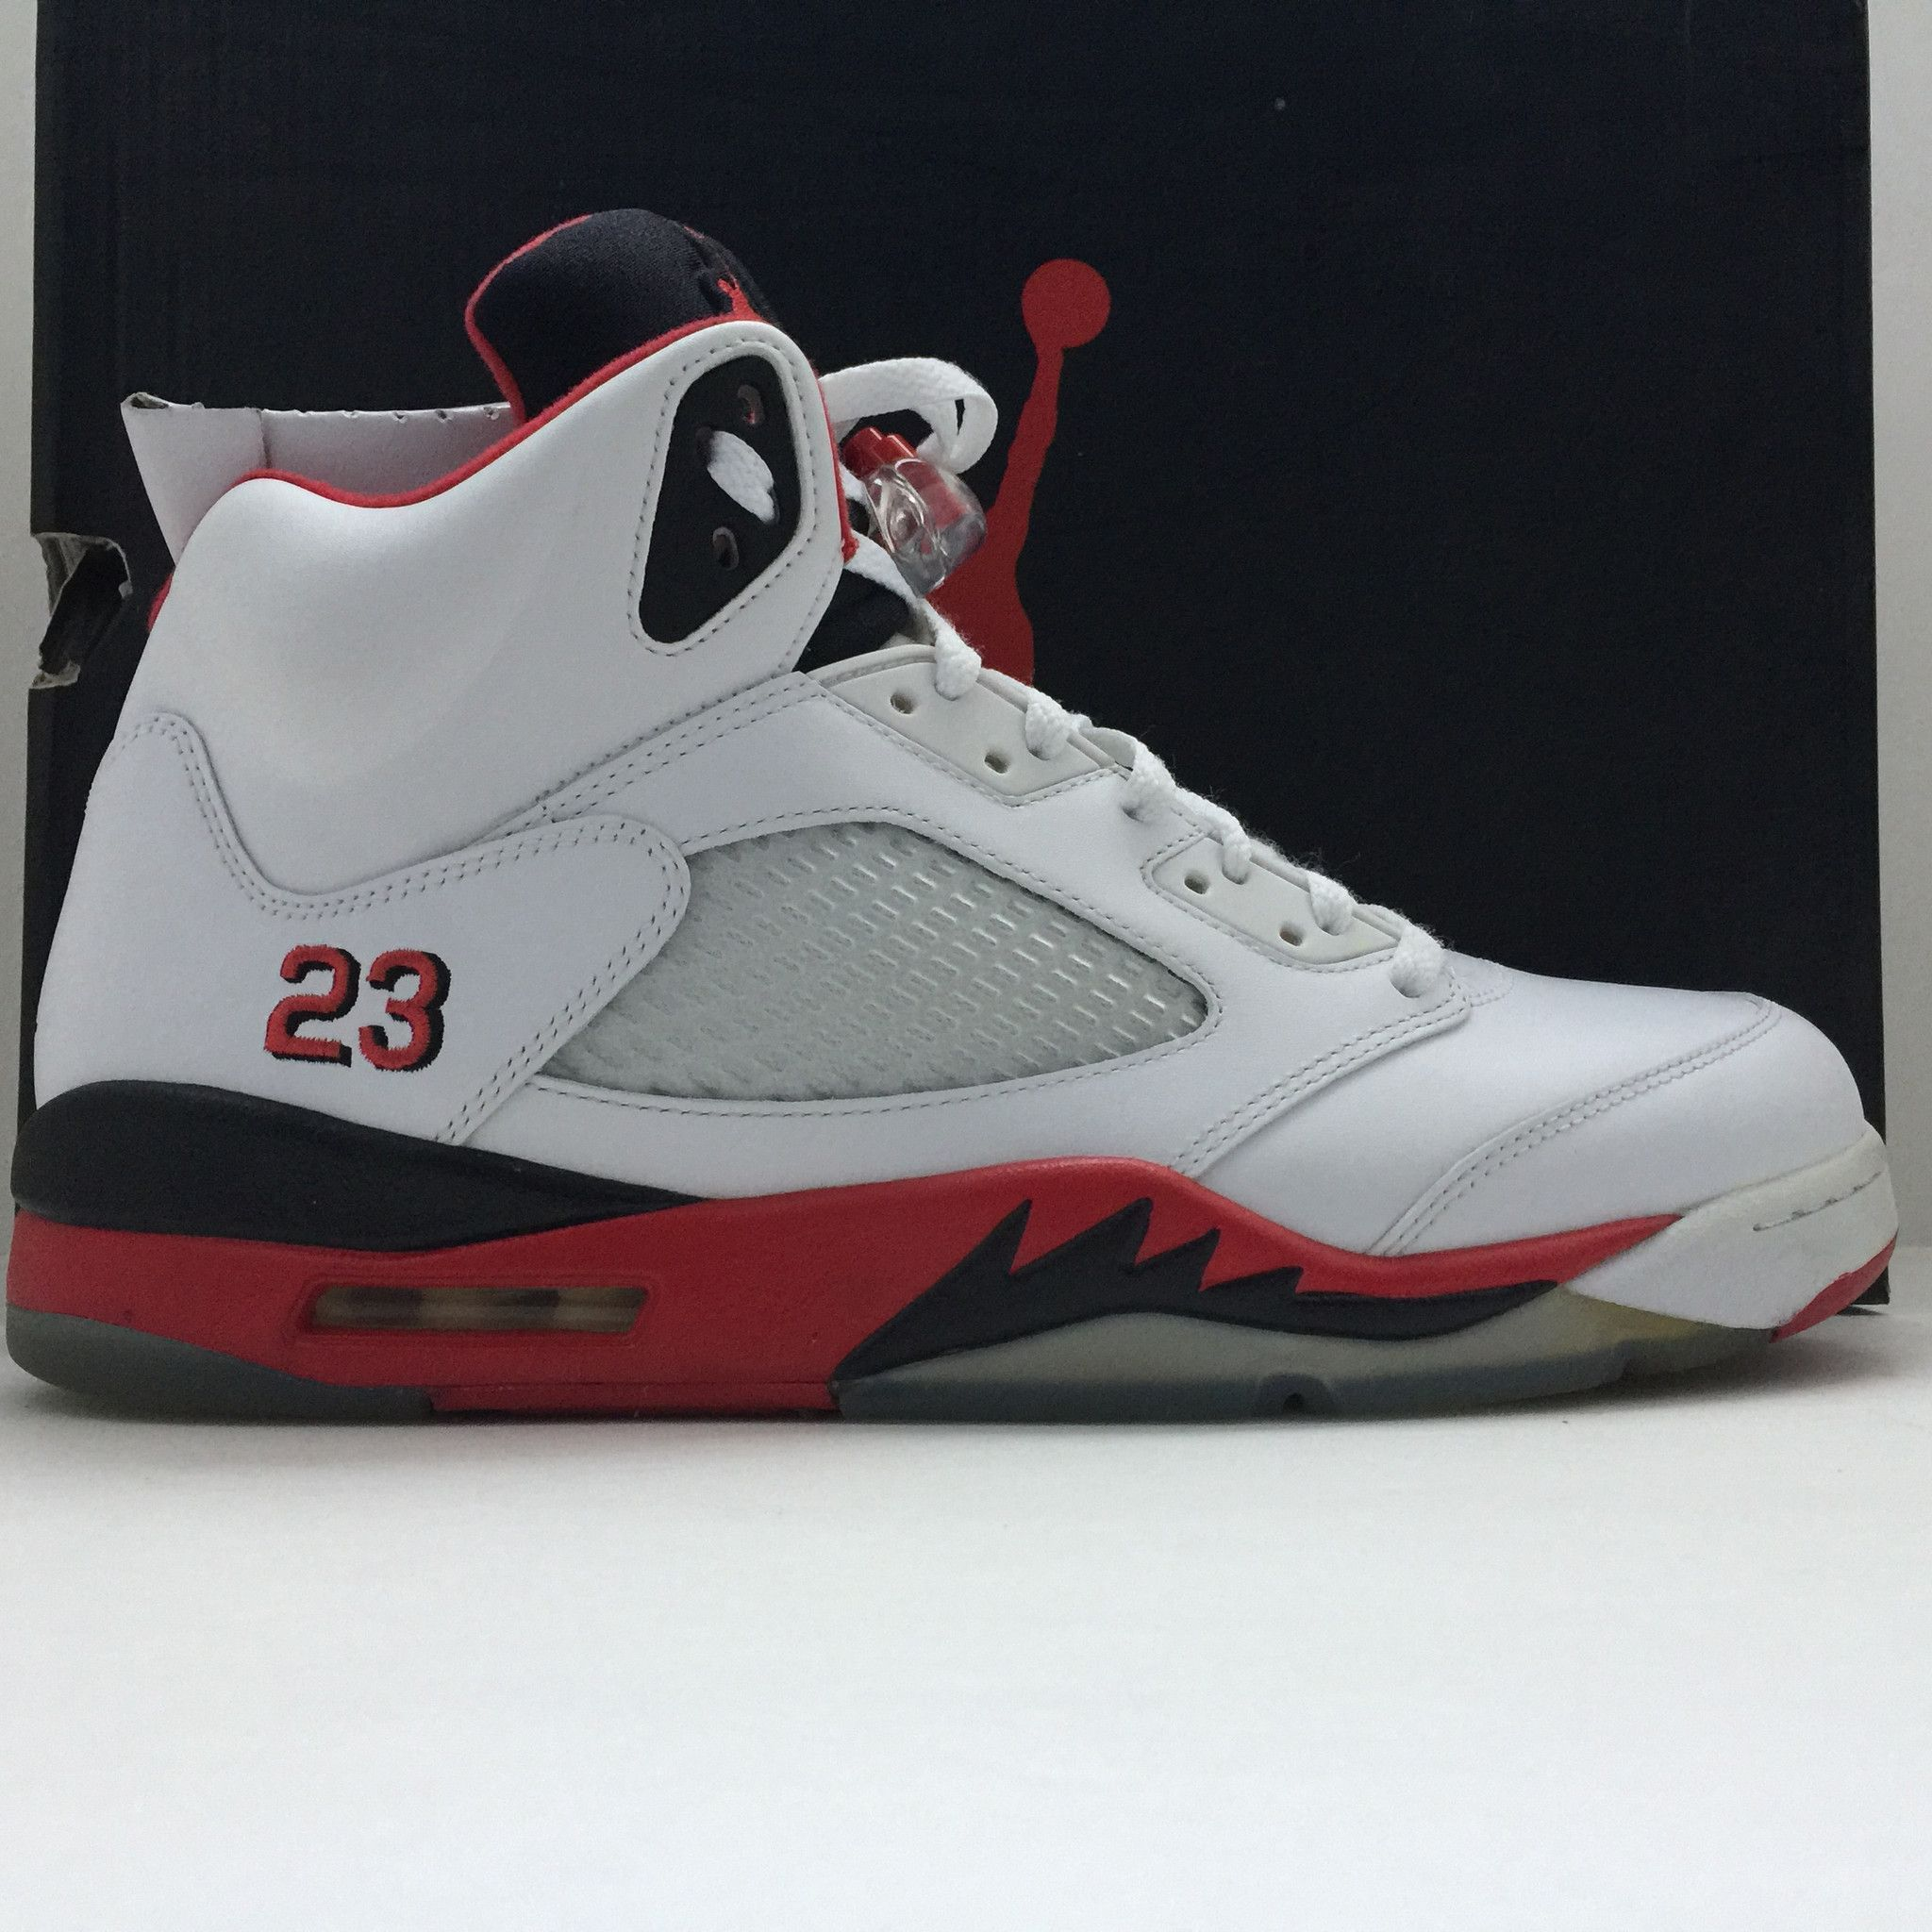 Retro Jordan Fire Red 5 Size 12